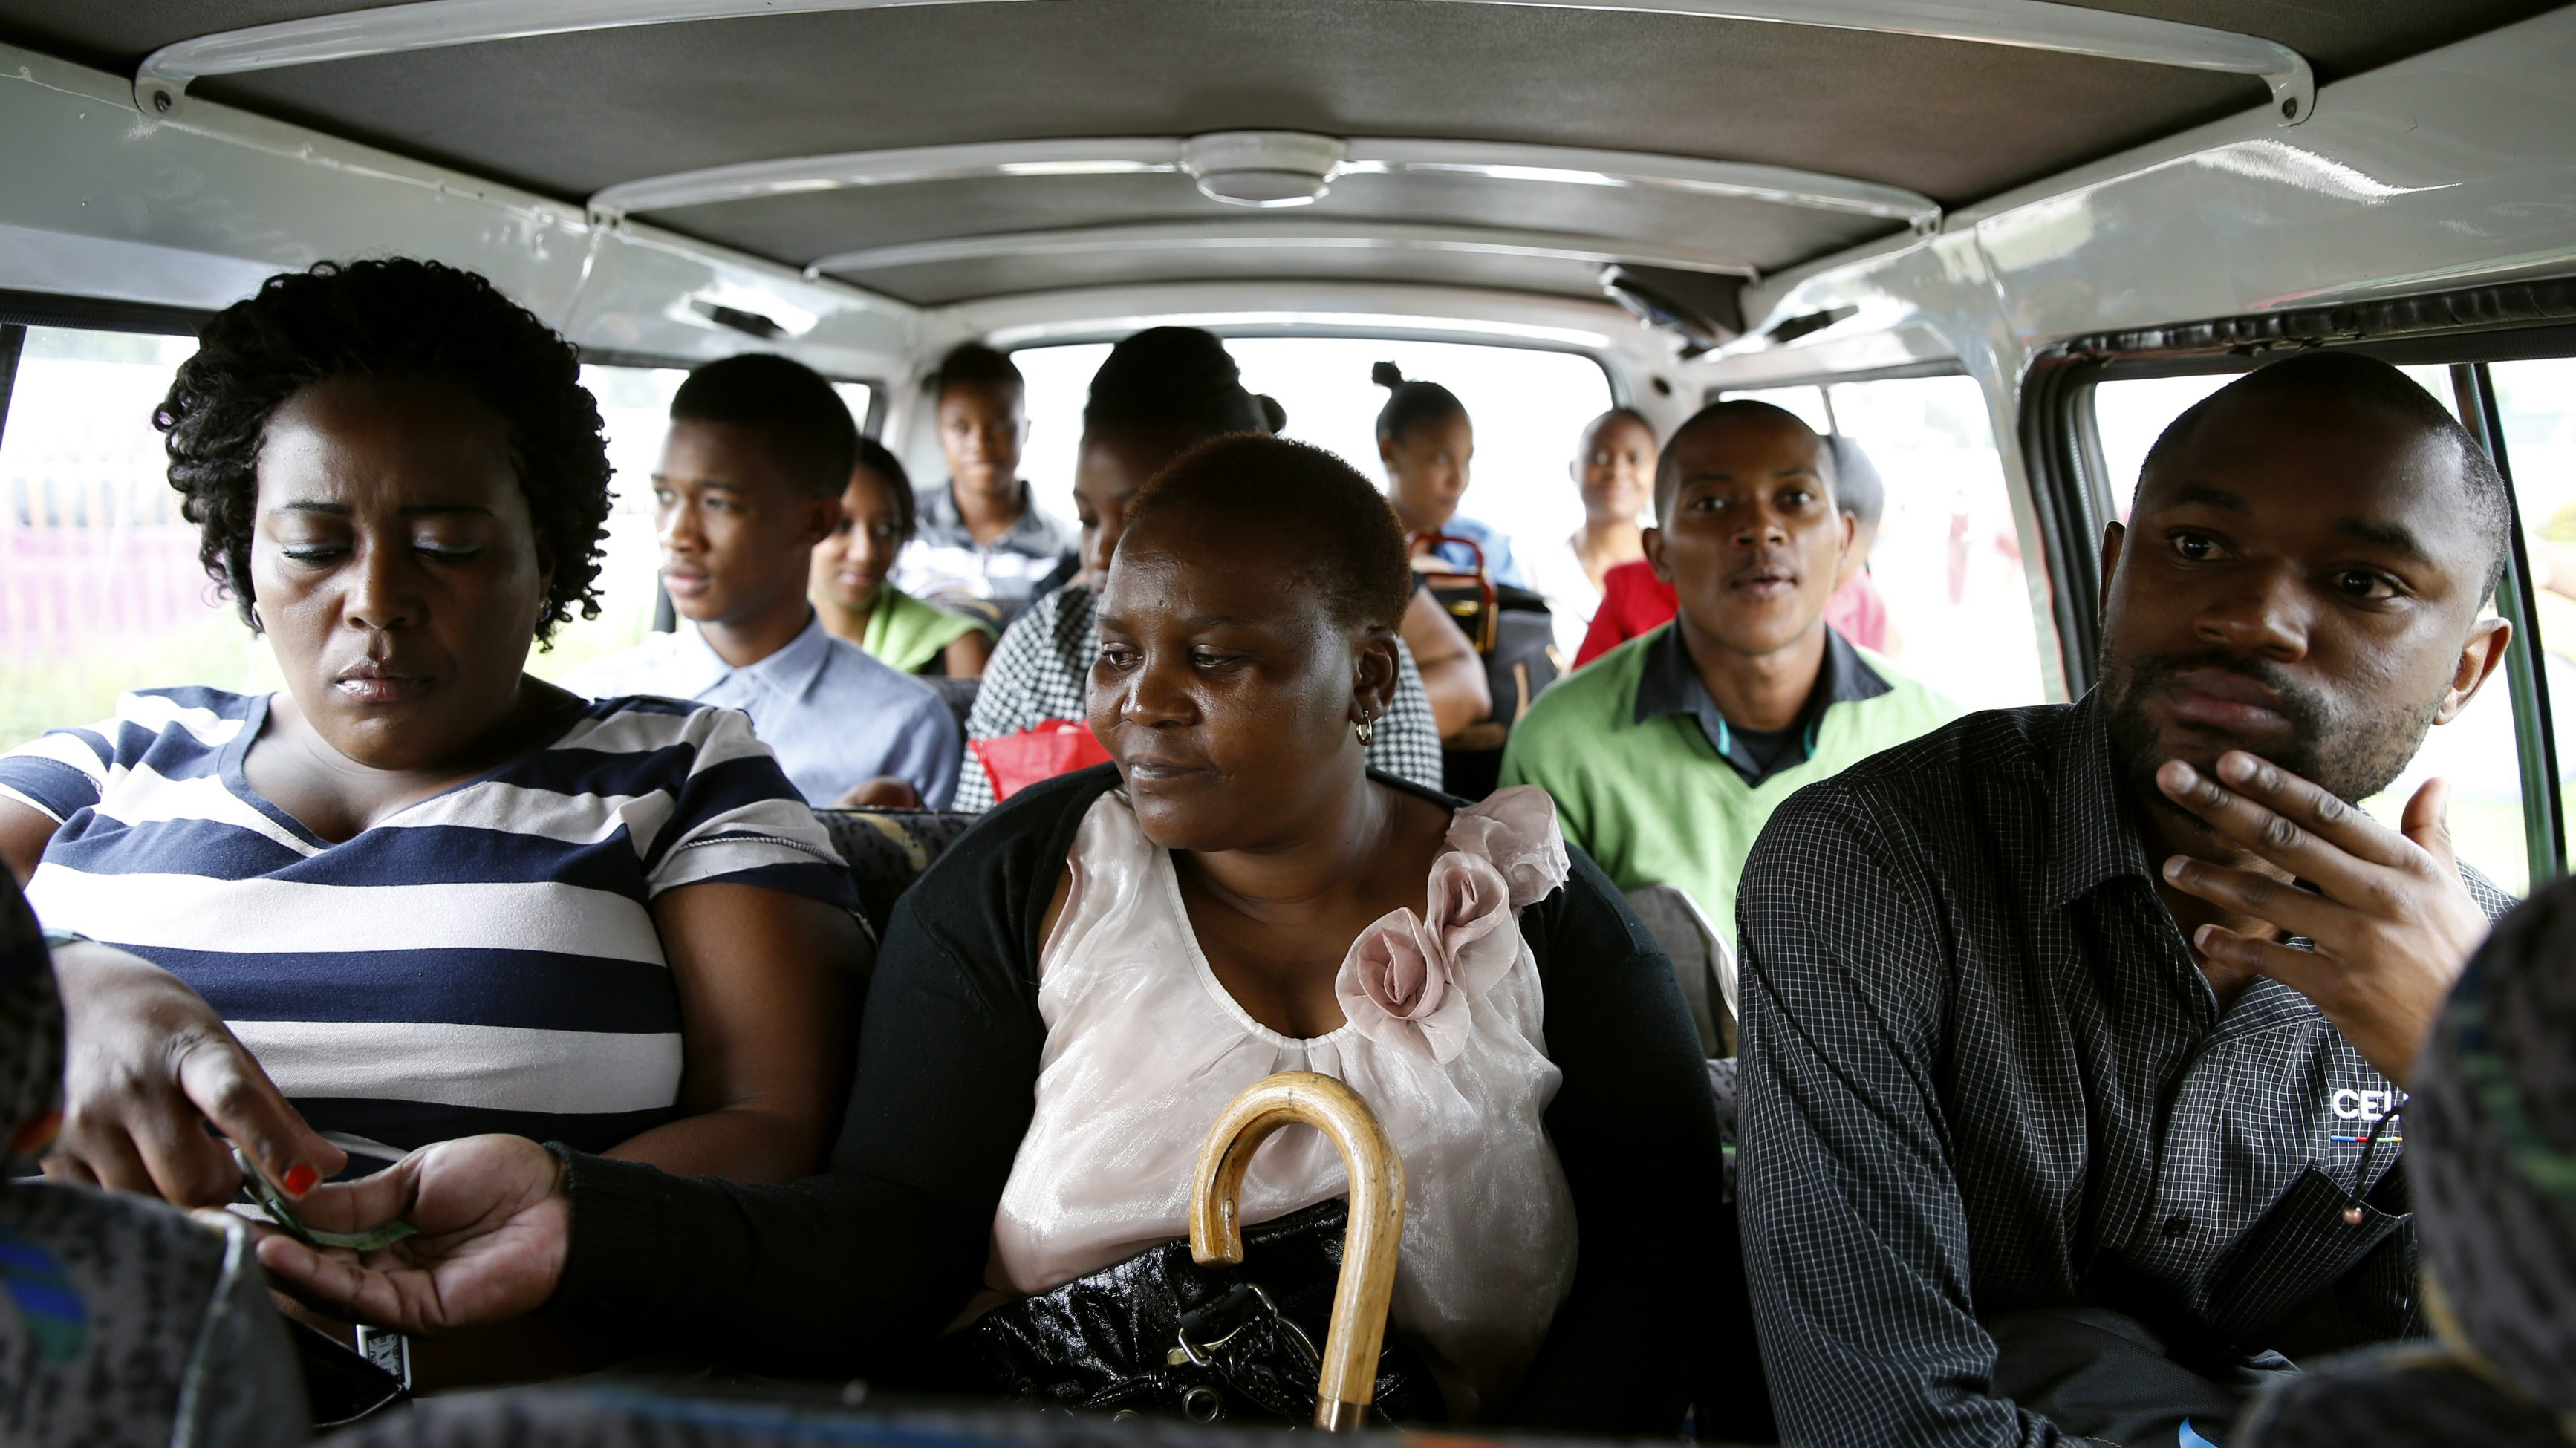 Passengers pass their fares to minibus taxi driver Zakes Hadebe as they commute from Soweto township to central Johannesburg February 21, 2014. South Africa's minibus taxi industry, scorned by other motorists for reckless driving and dogged by a reputation for violence, moves 15 million people every day, most of them lower income blacks. More like buses than the taxis of New York or London, the rumbling 16-seaters are the wheels of Africa's largest economy. Picture taken February 21. To match story SAFRICA-TAXIS/ REUTERS/MIke Hutchings (SOUTH AFRICA - Tags: TRANSPORT BUSINESS EMPLOYMENT) - RTR3GEZN